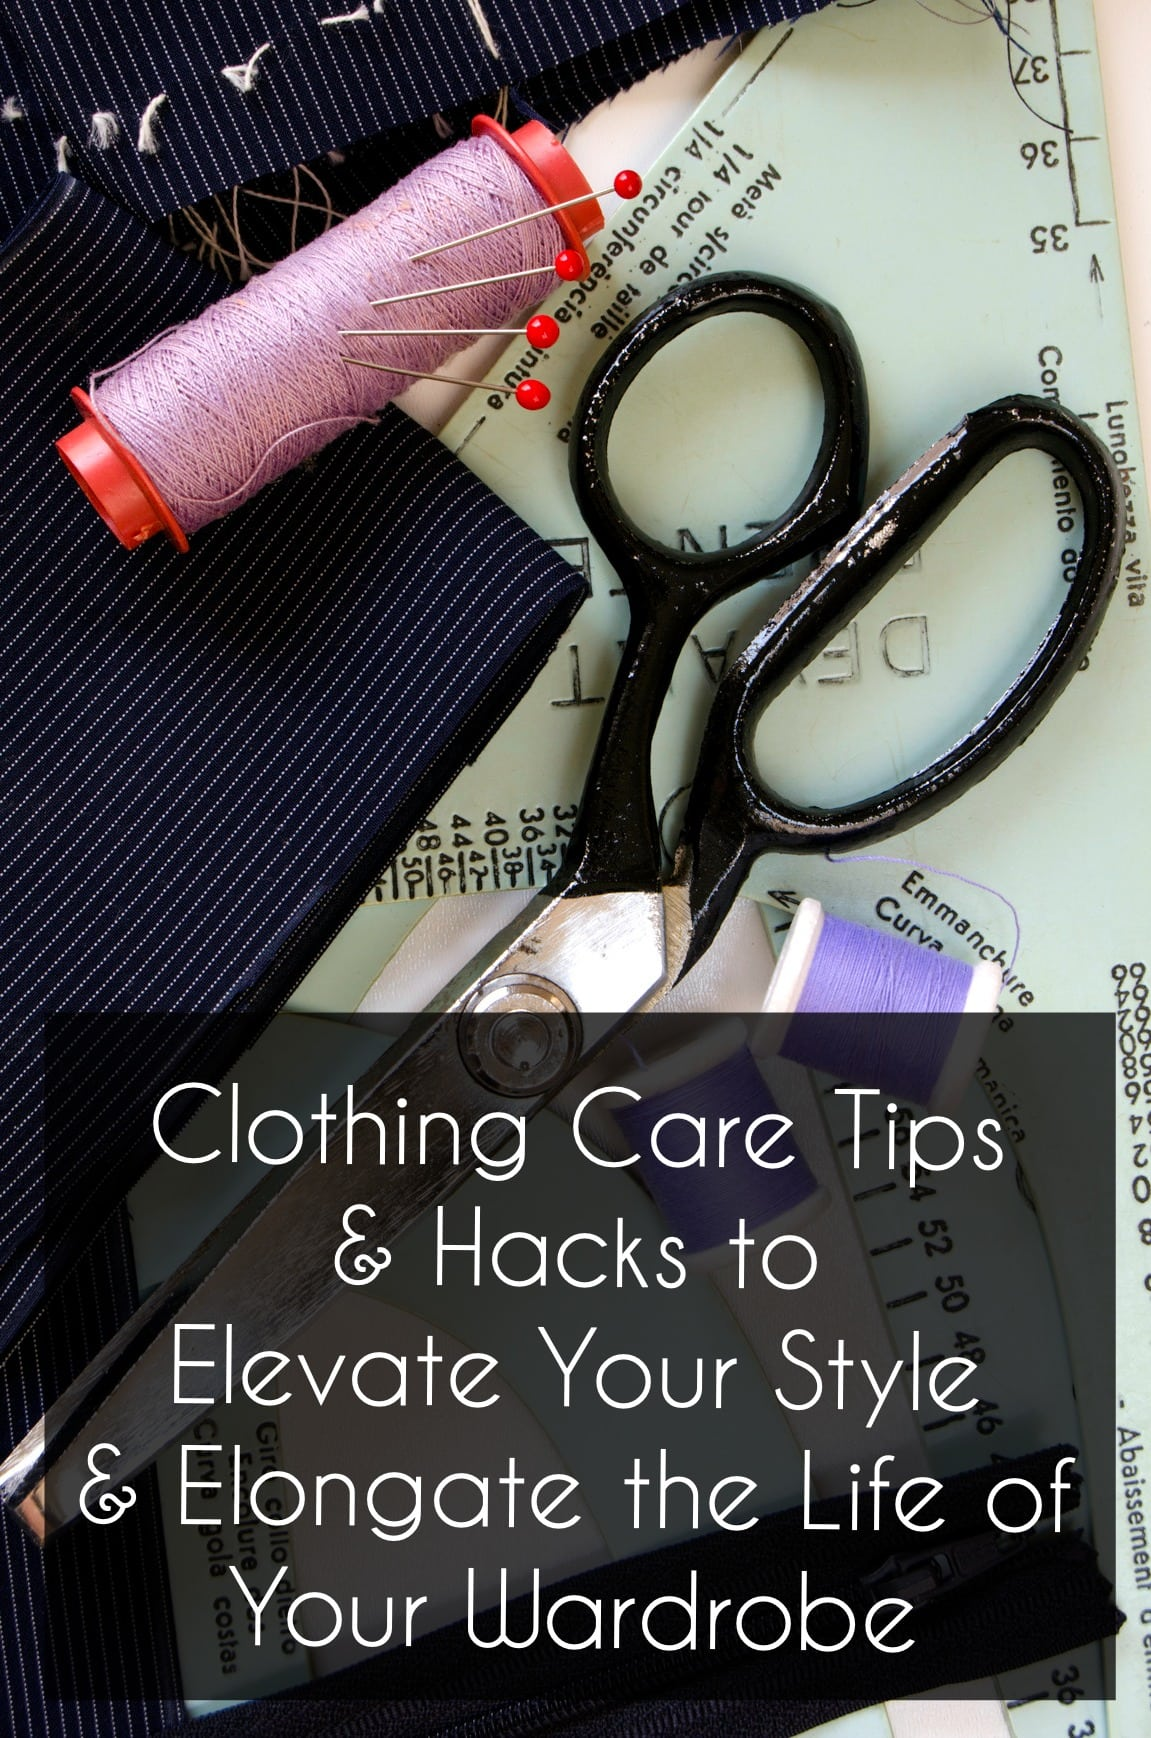 clothing care tips and hacks to elevate your style and elongate the life of your wardrobe